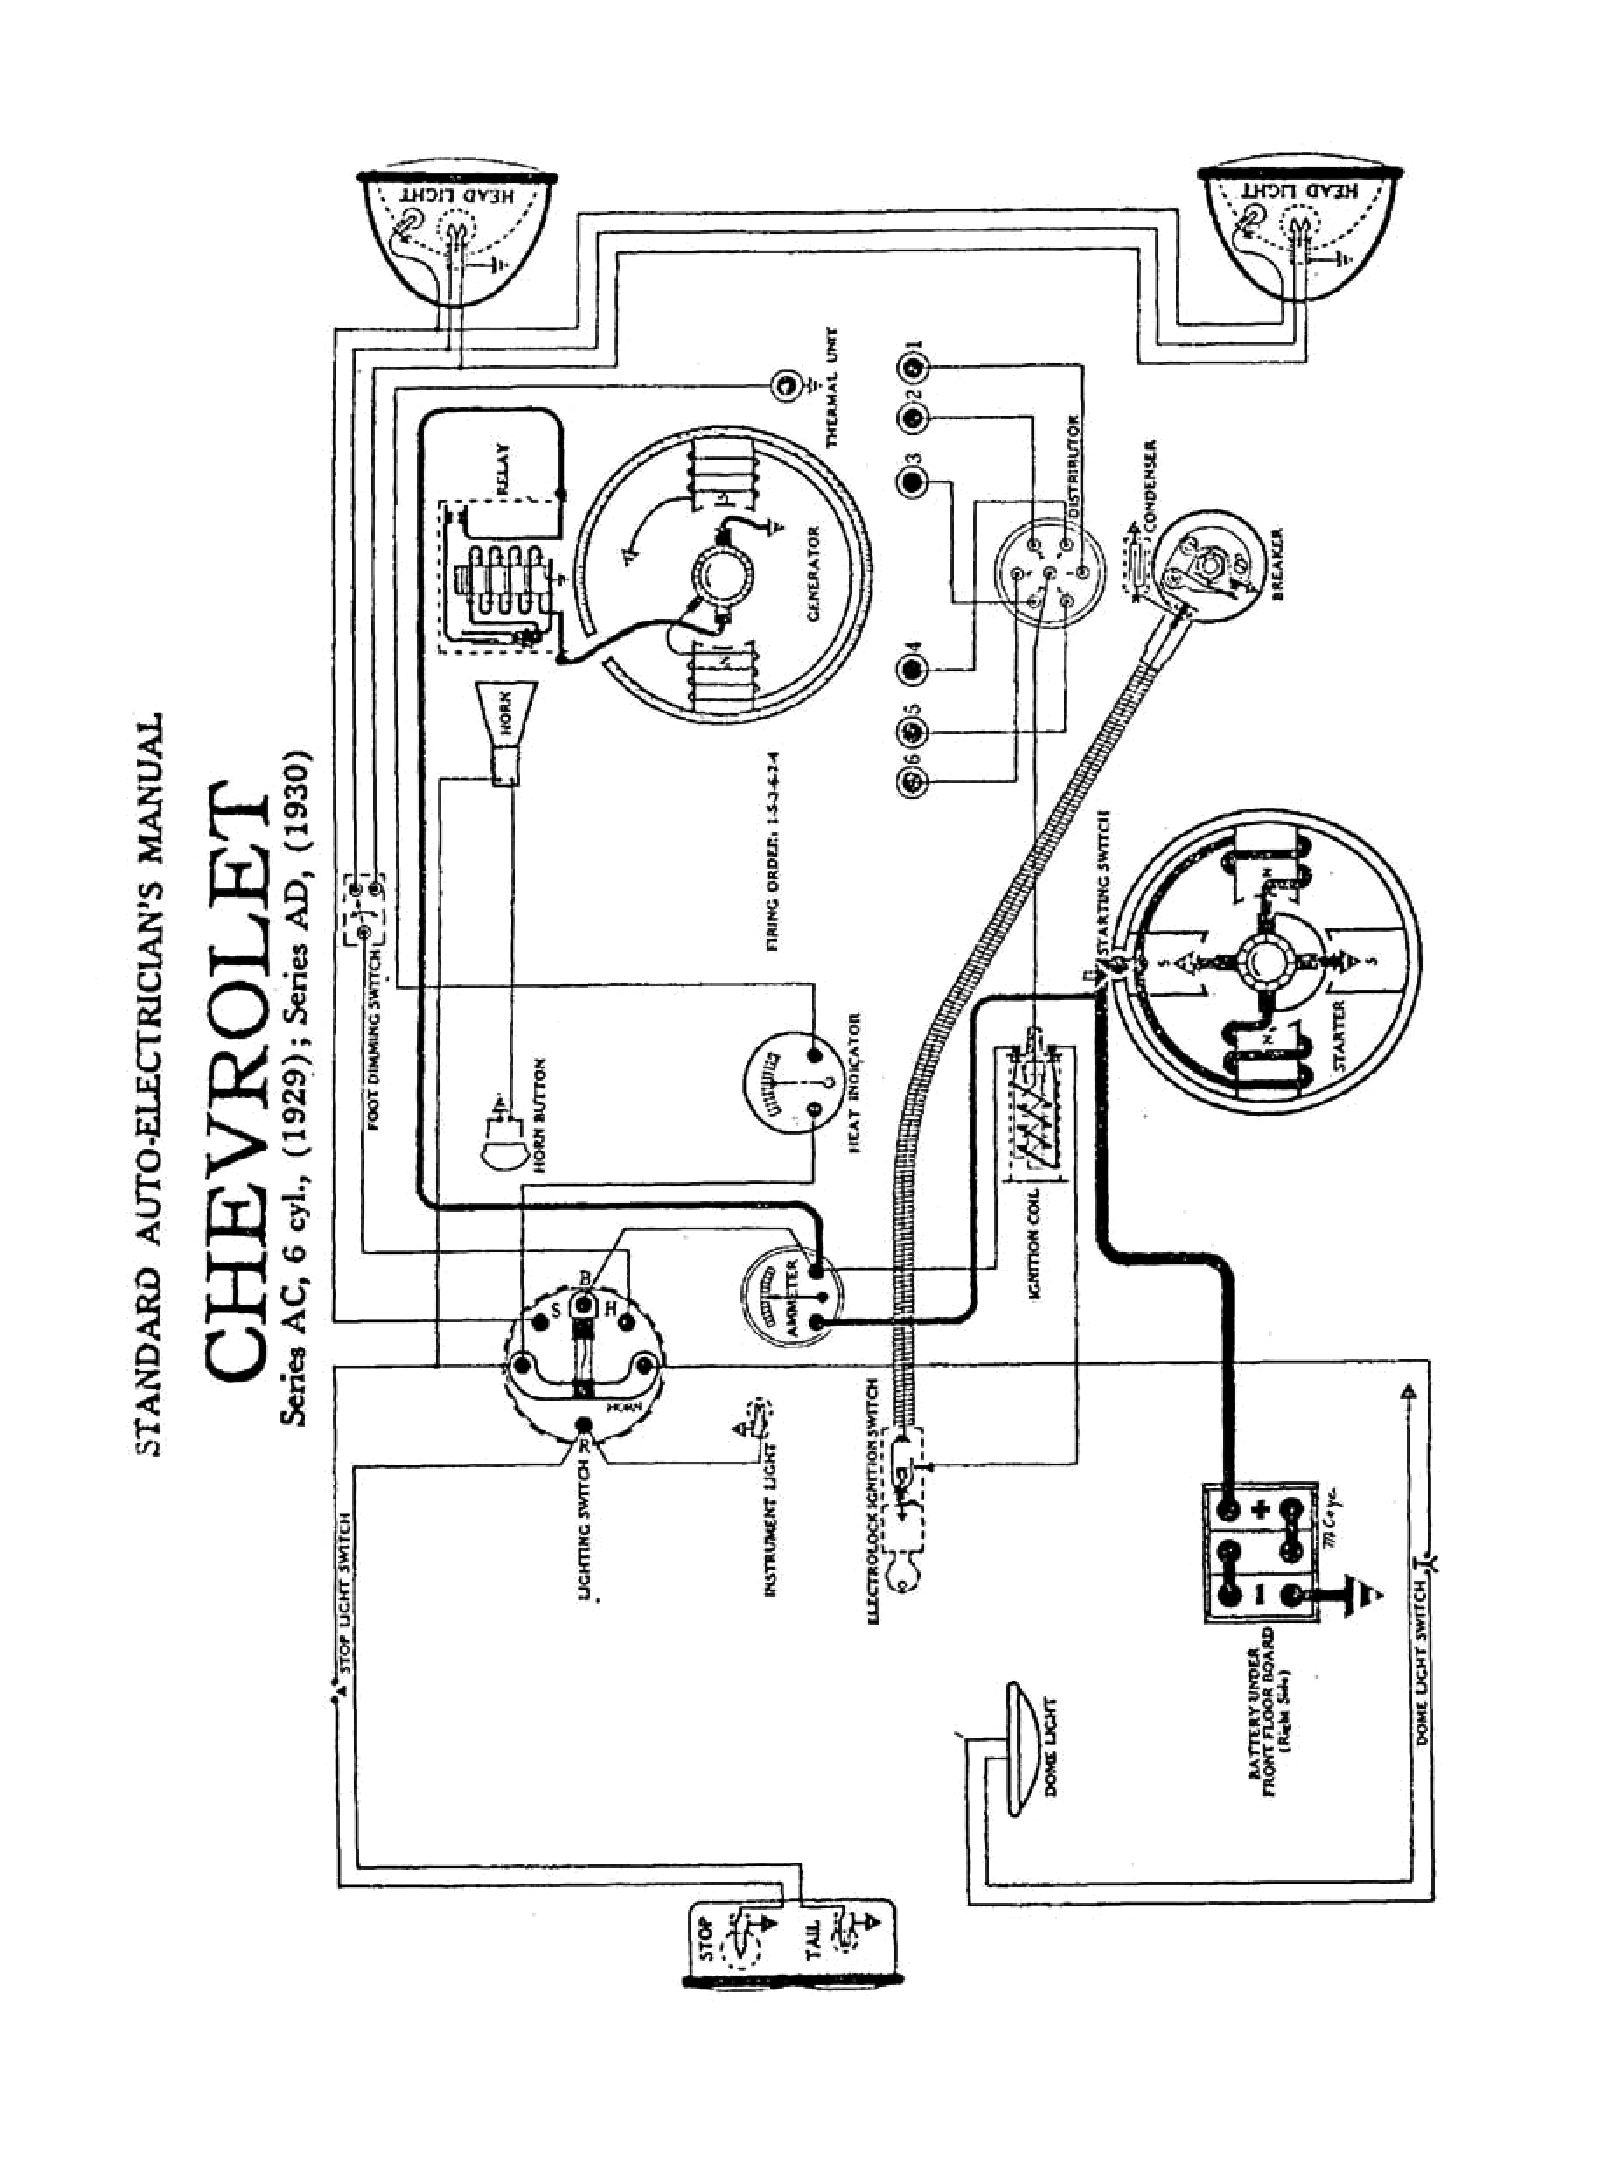 Ford 3000 Ignition Switch Wiring Diagram Database